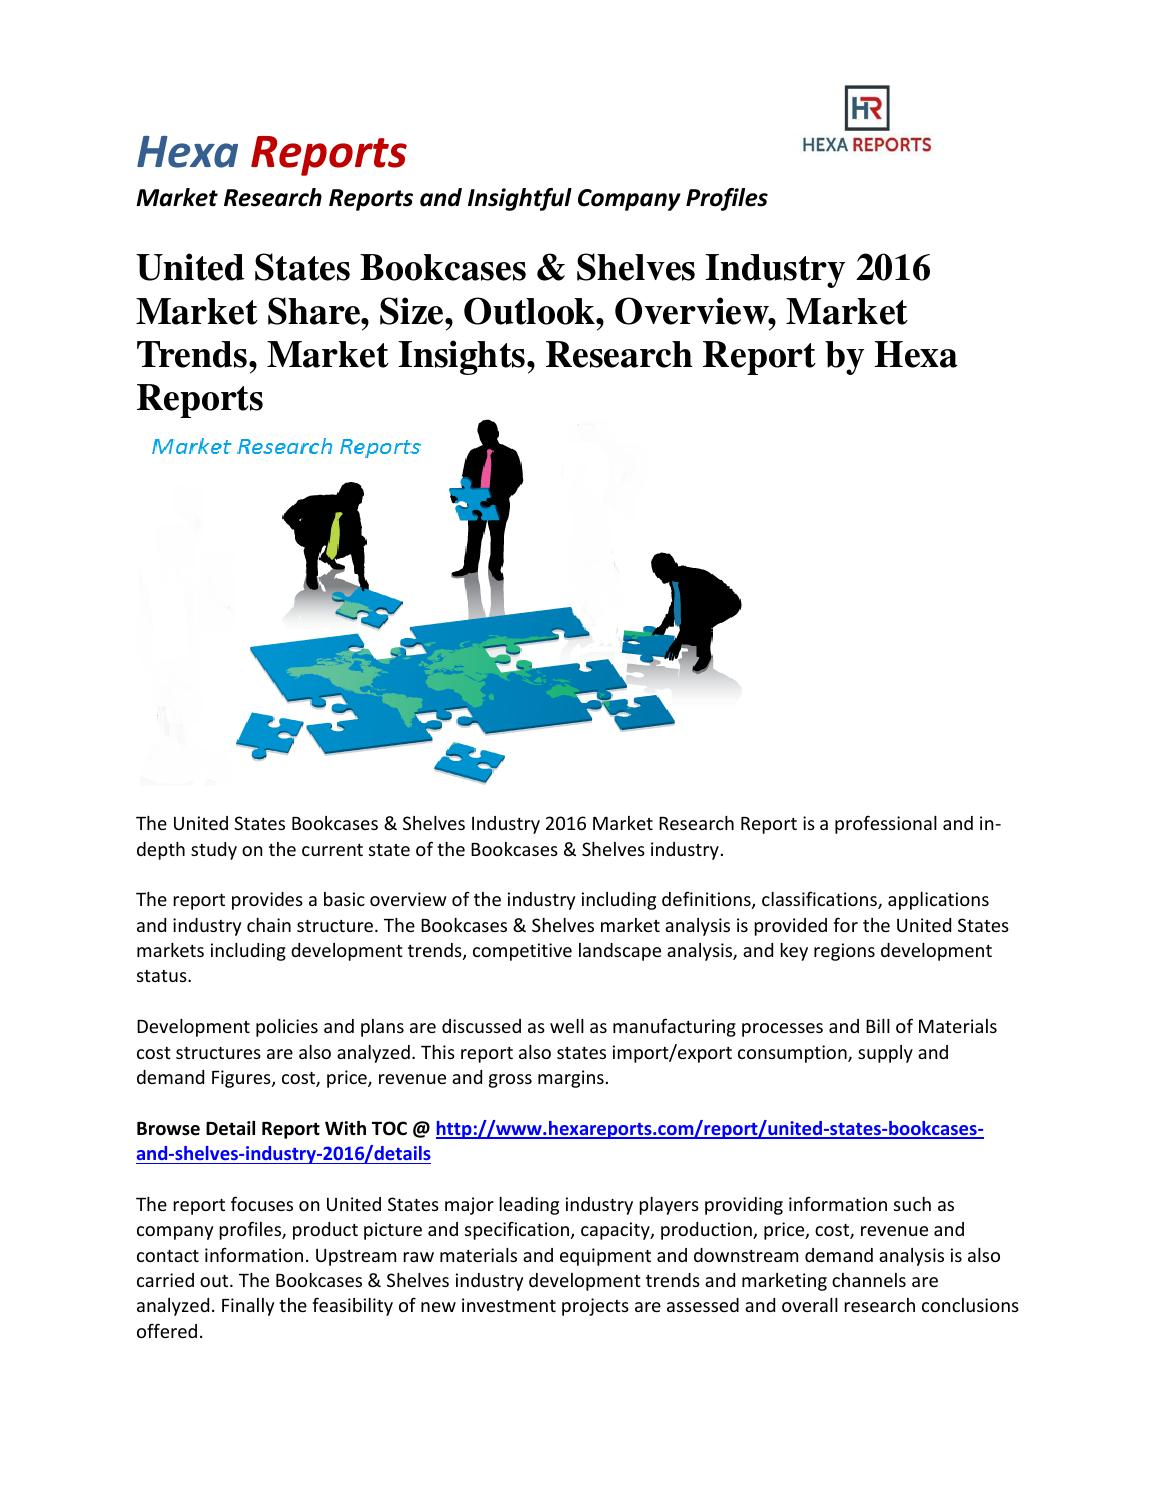 United States Bookcases & Shelves Industry 2016 Market Share